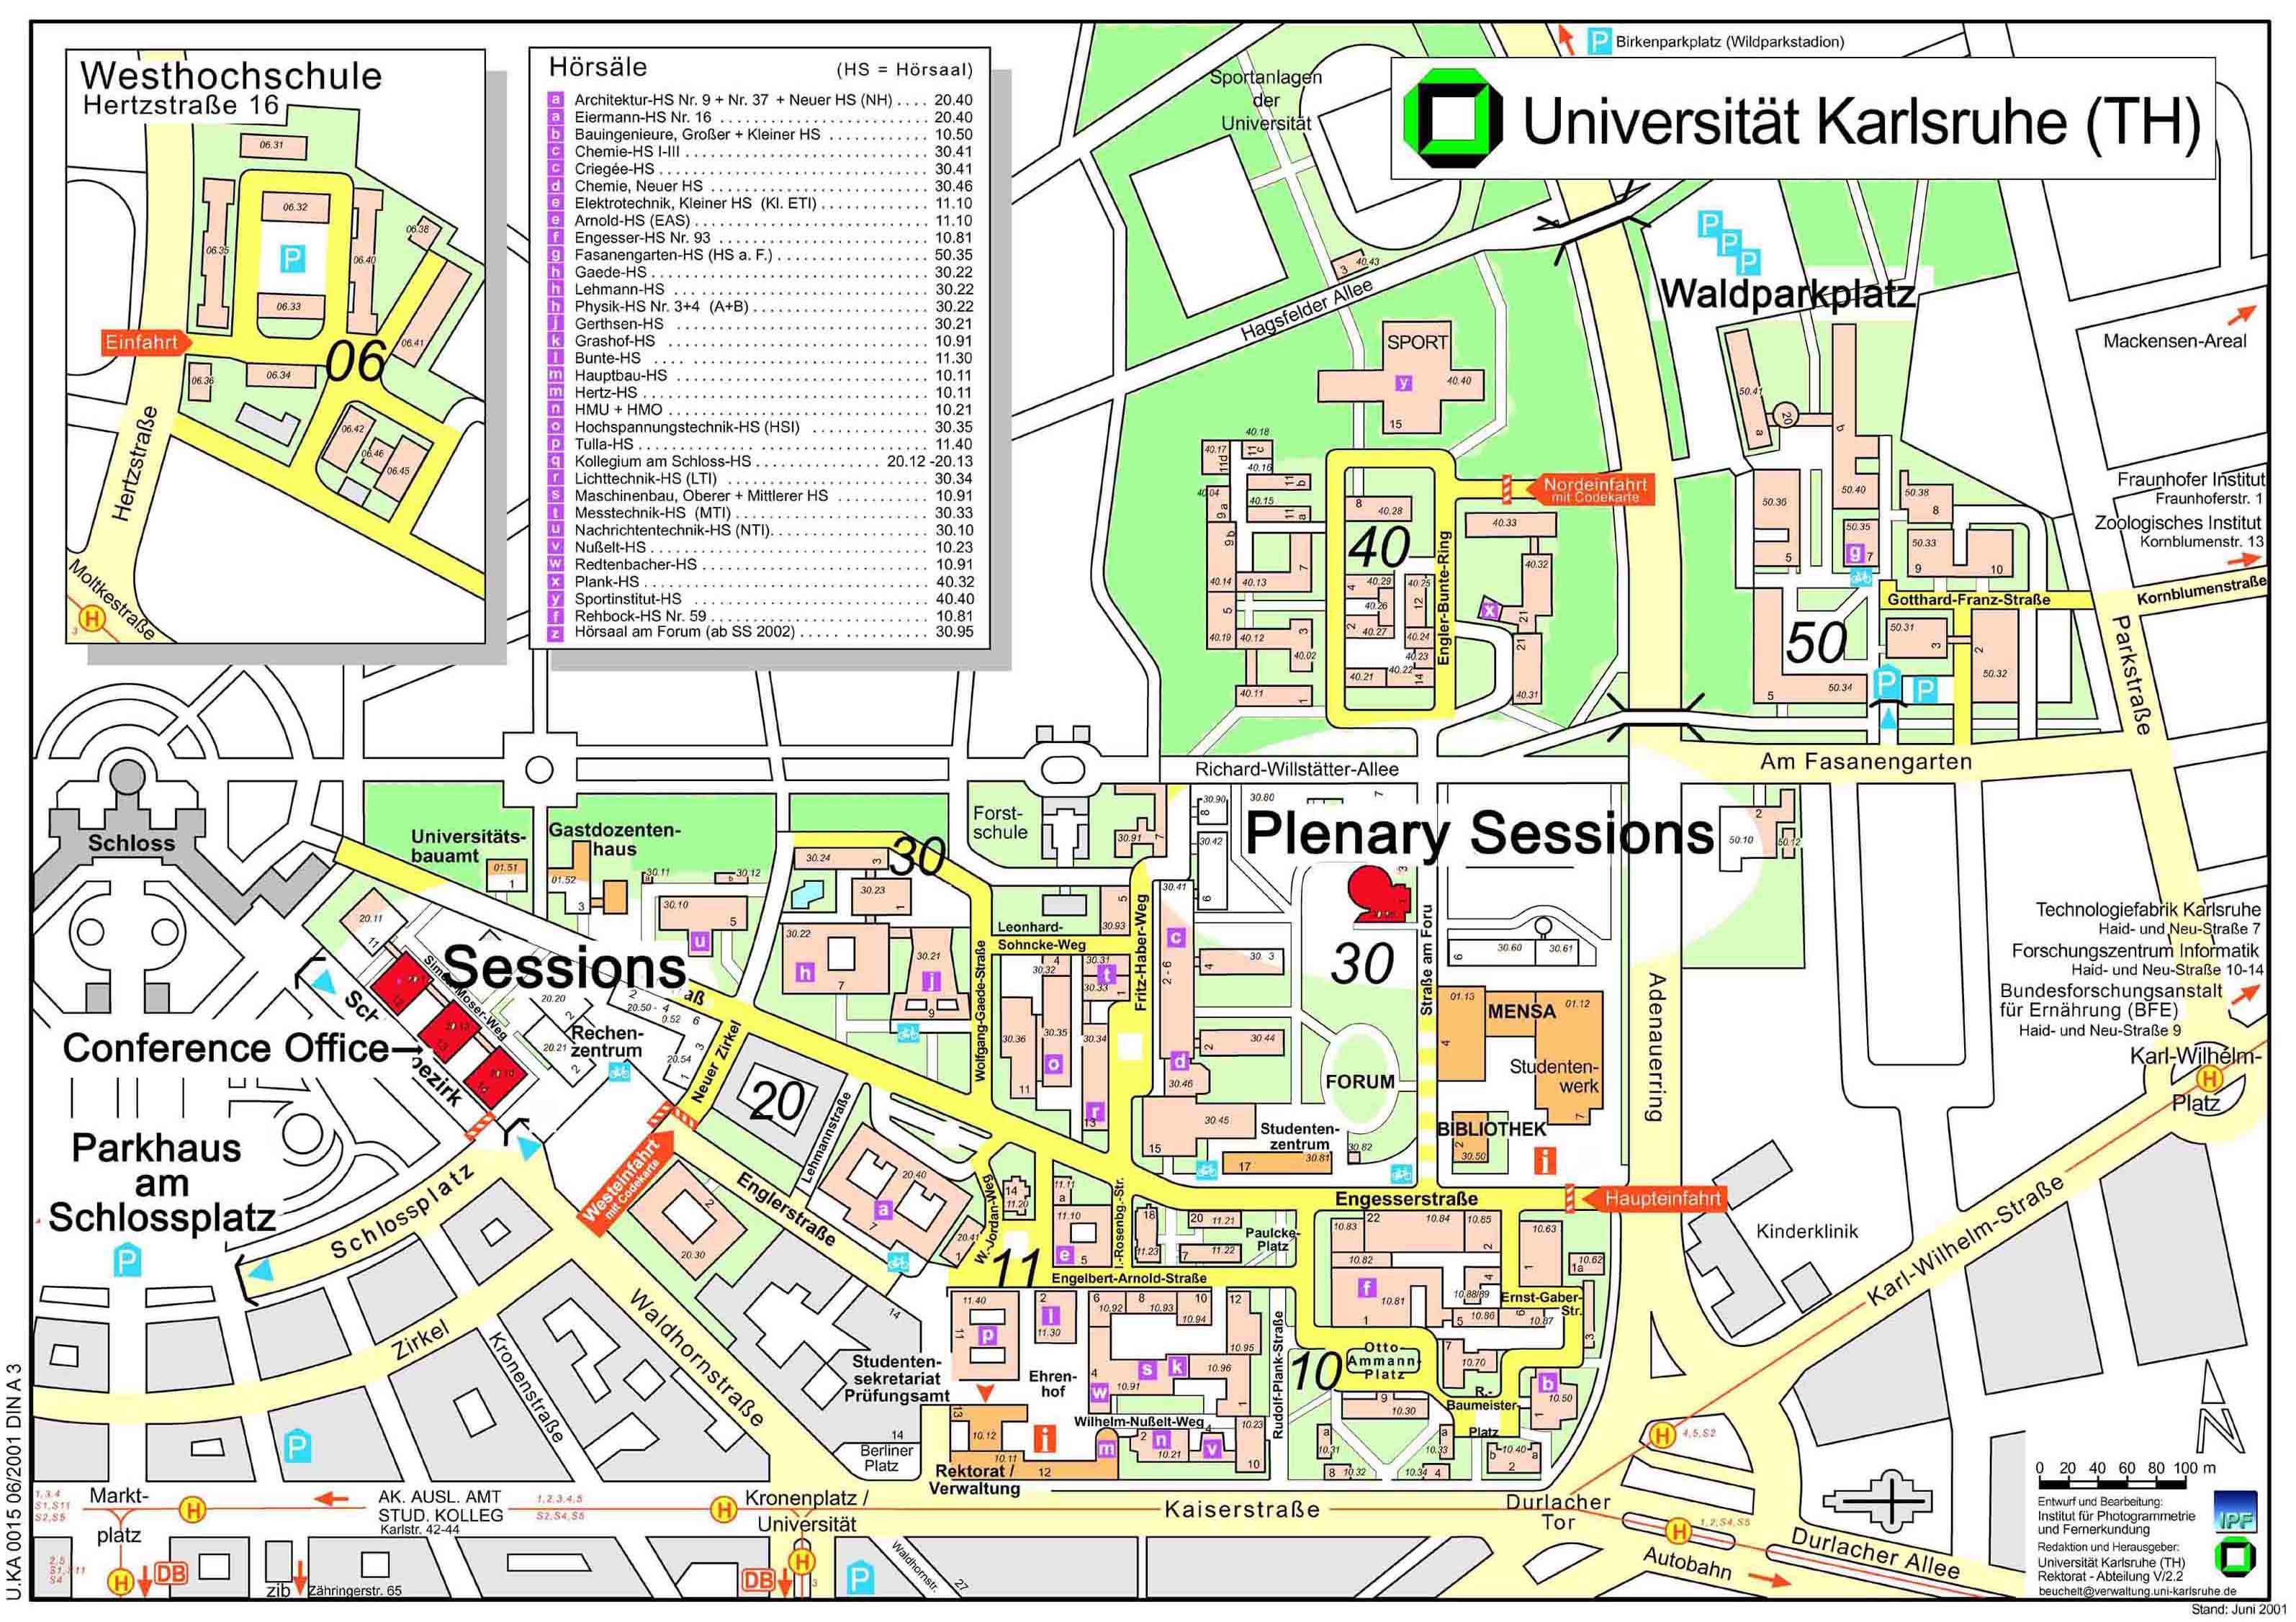 Karlsruhe University Campus Map Karlsruhe Germany mappery